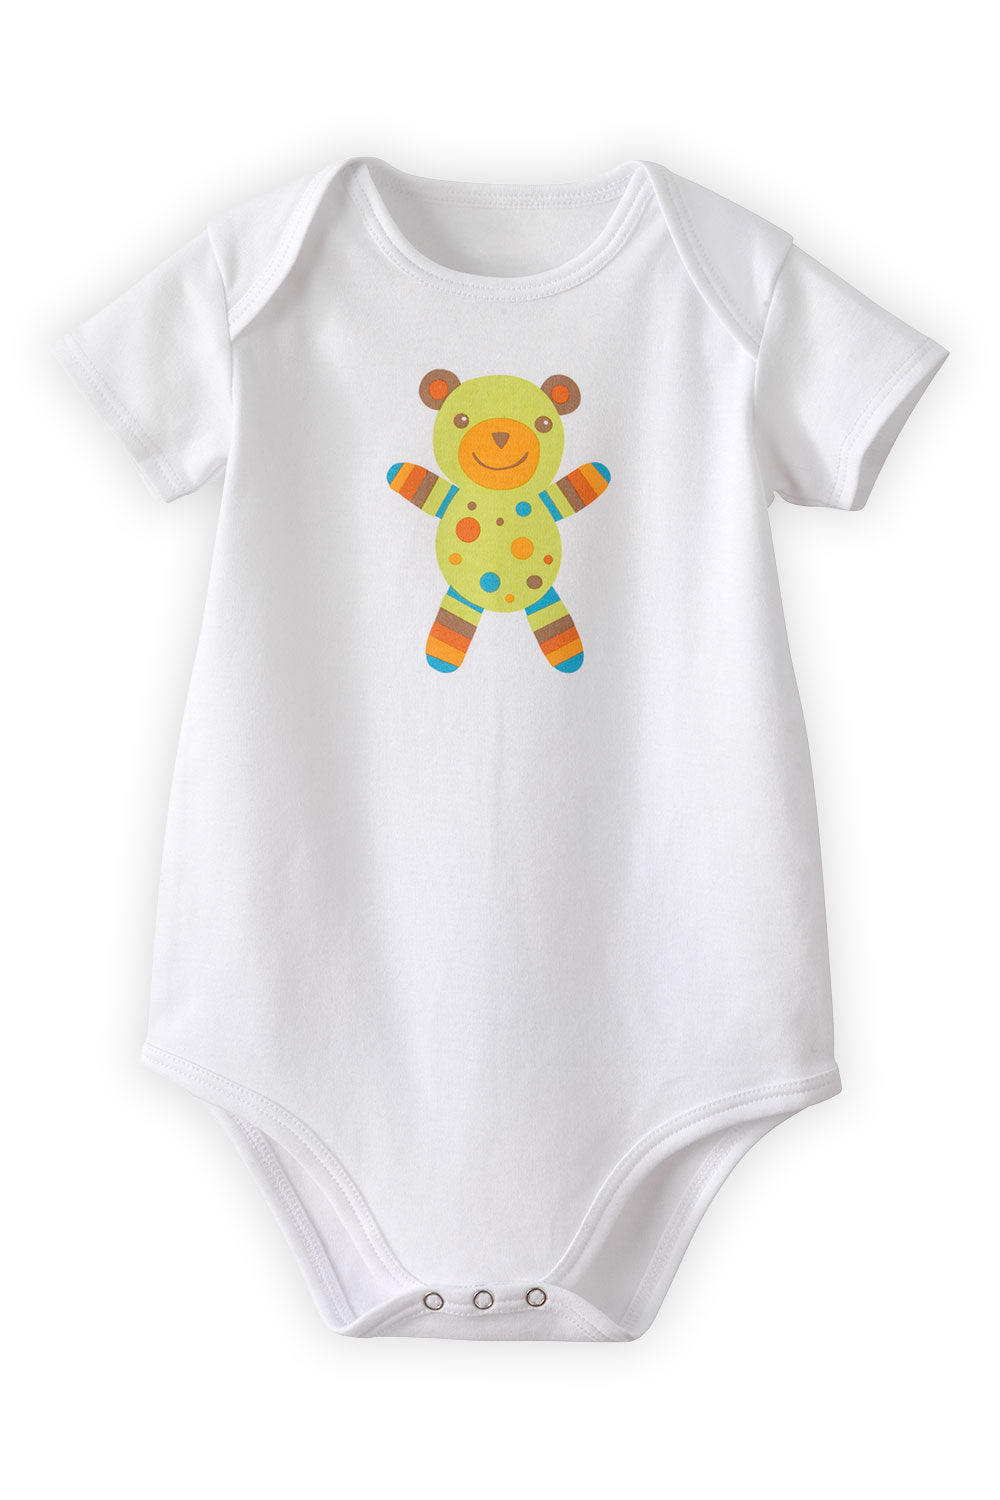 joobles-fair-trade-organic-baby-bodysuit-huggy-the-bear